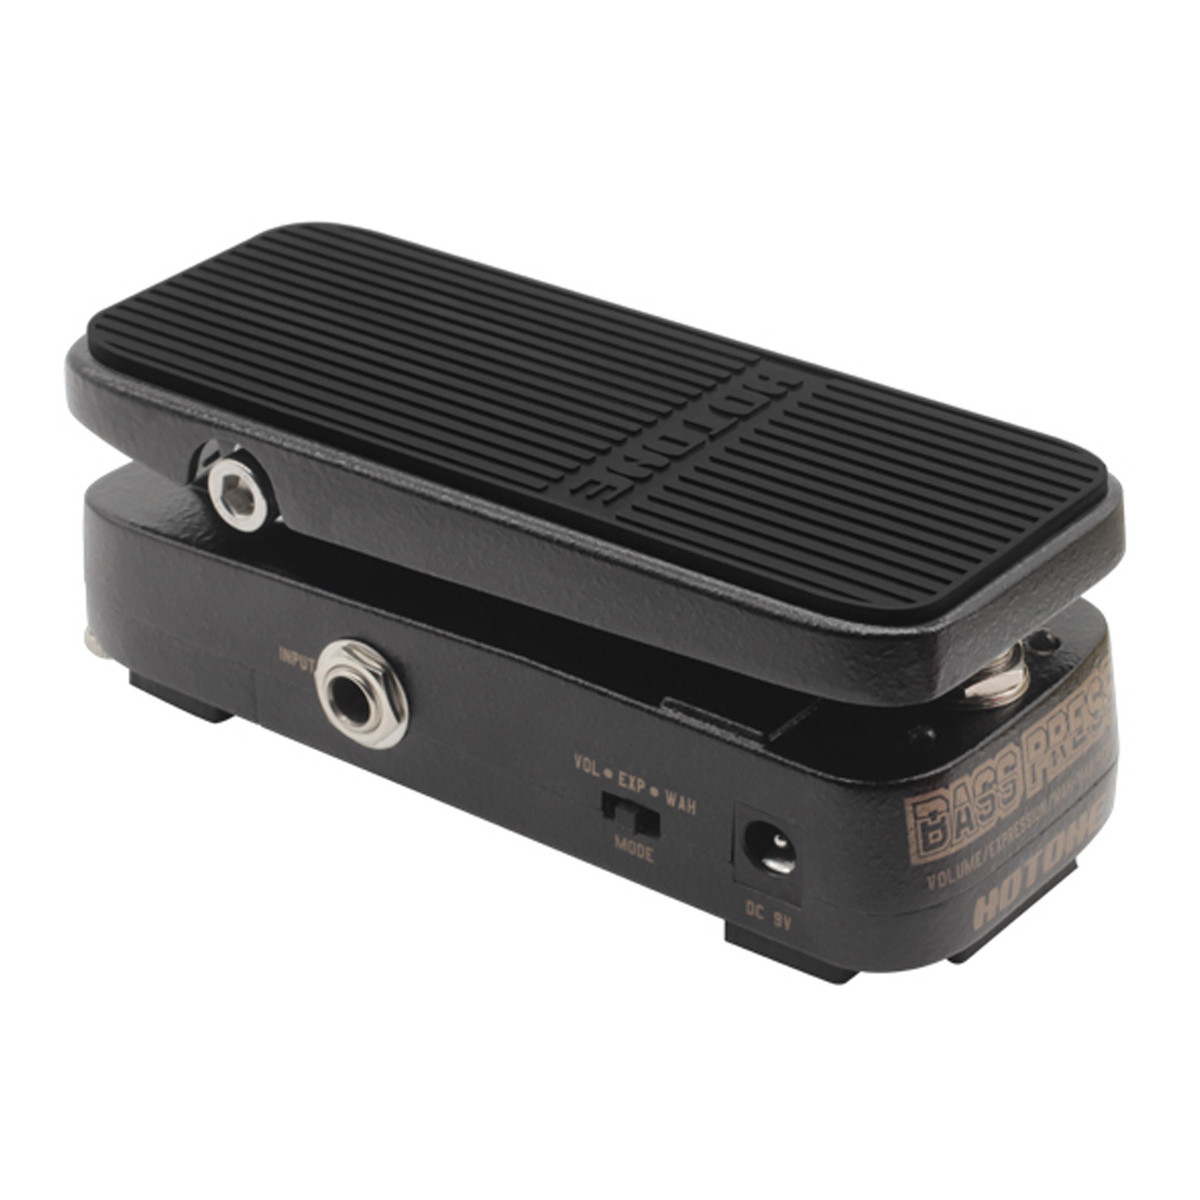 hotone bass press 3 in 1 bass wah volume expression pedal at gear4music. Black Bedroom Furniture Sets. Home Design Ideas